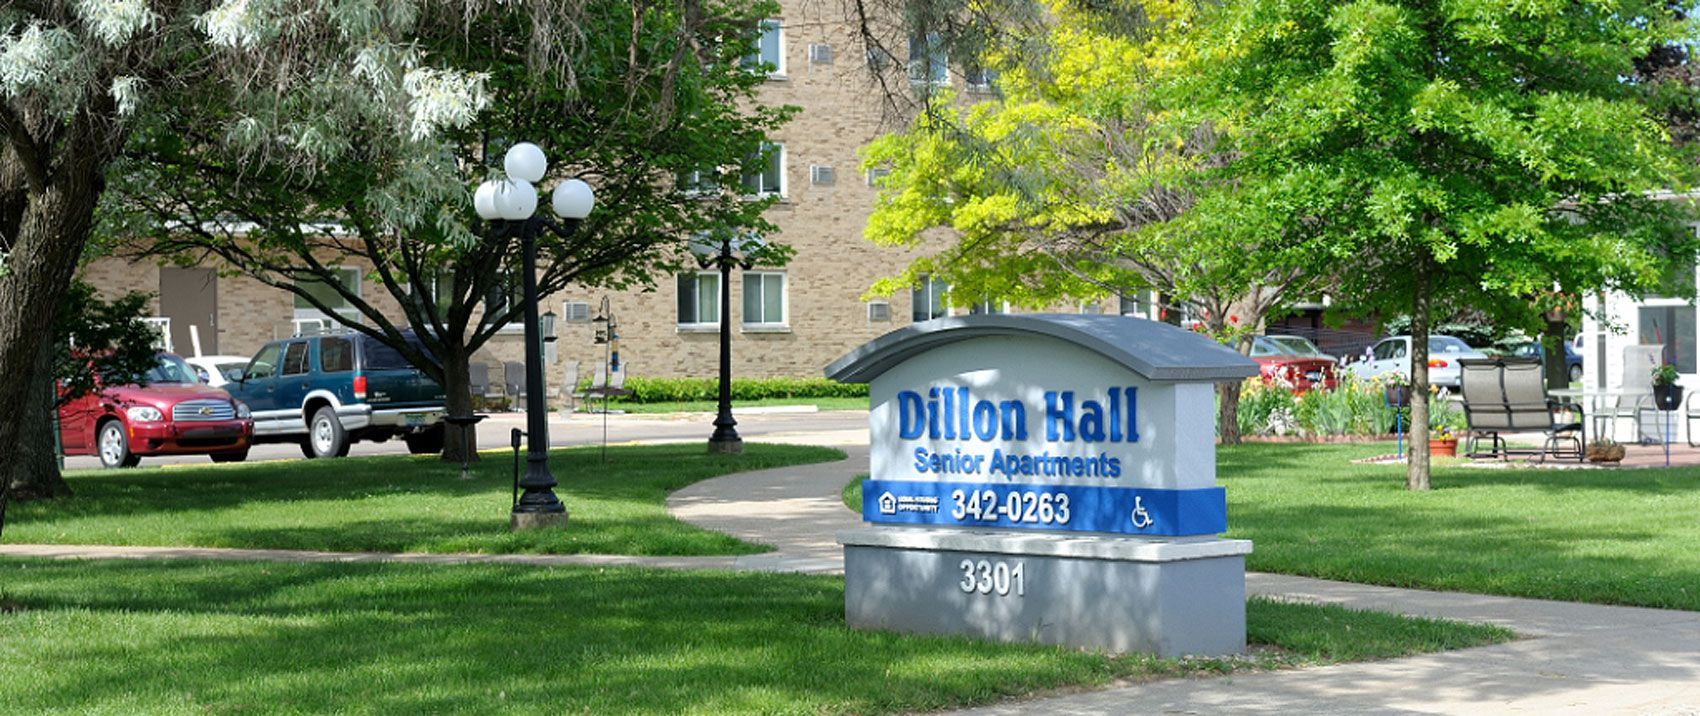 Dillon Hall Senior Apartments Is A Hud Apartment Residents Usually Pay 30 Of Their Gross Income For Rent The Amount Less Roved